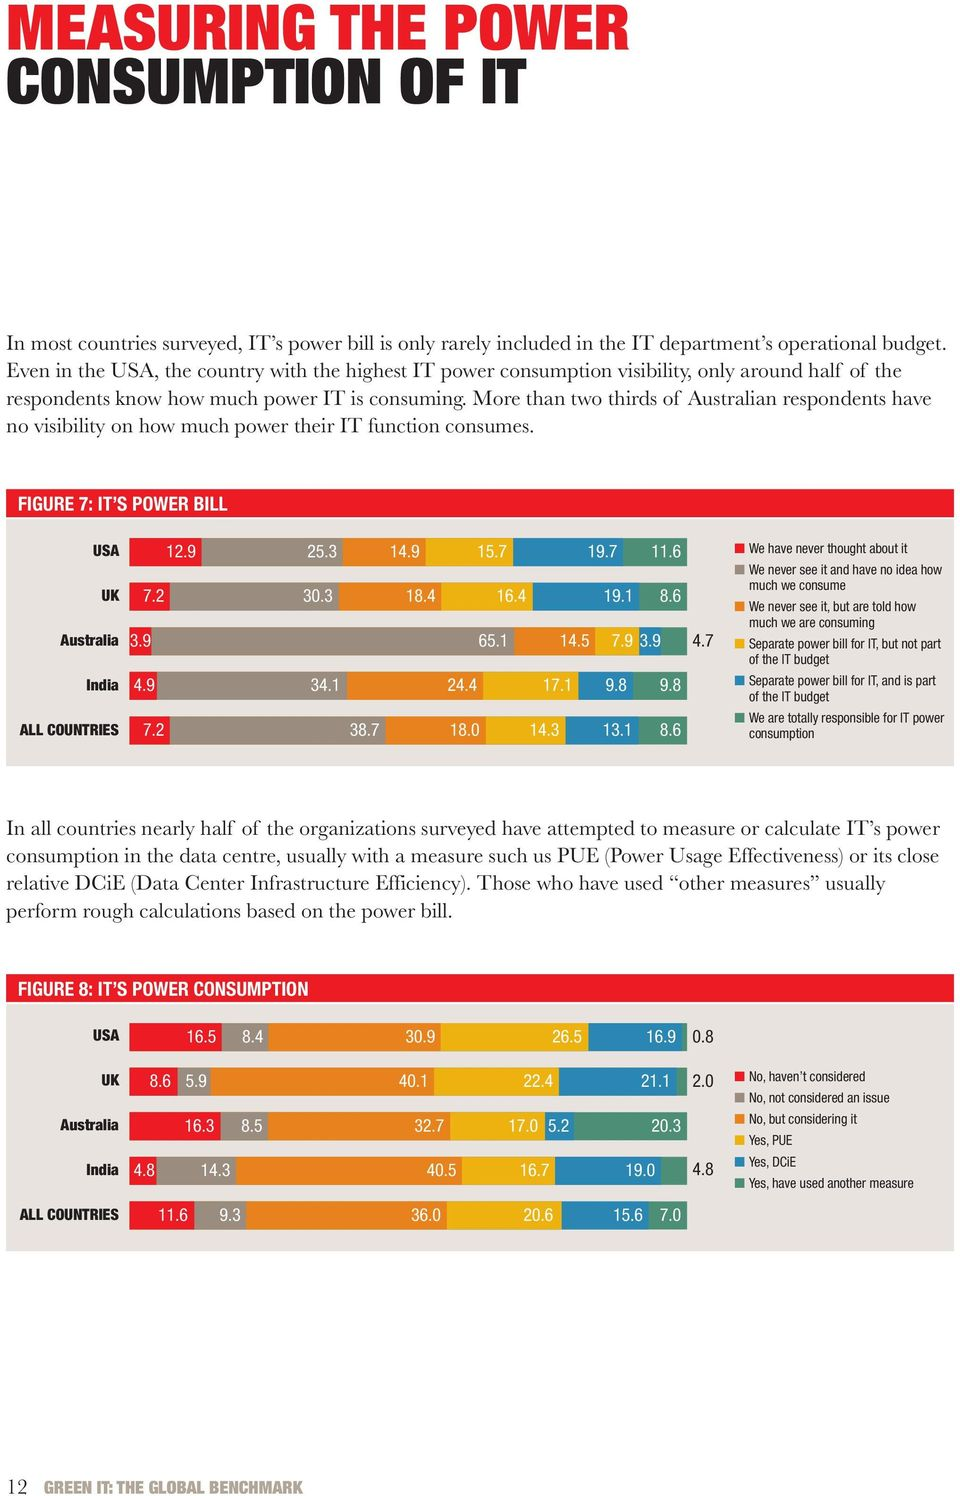 More than two thirds of n respondents have no visibility on how much power their IT function consumes. FIGURE 7: IT S POWER BILL India 12.9 25.3 14.9 15.7 19.7 11.6 7.2 30.3 18.4 16.4 19.1 8.6 3.9 65.